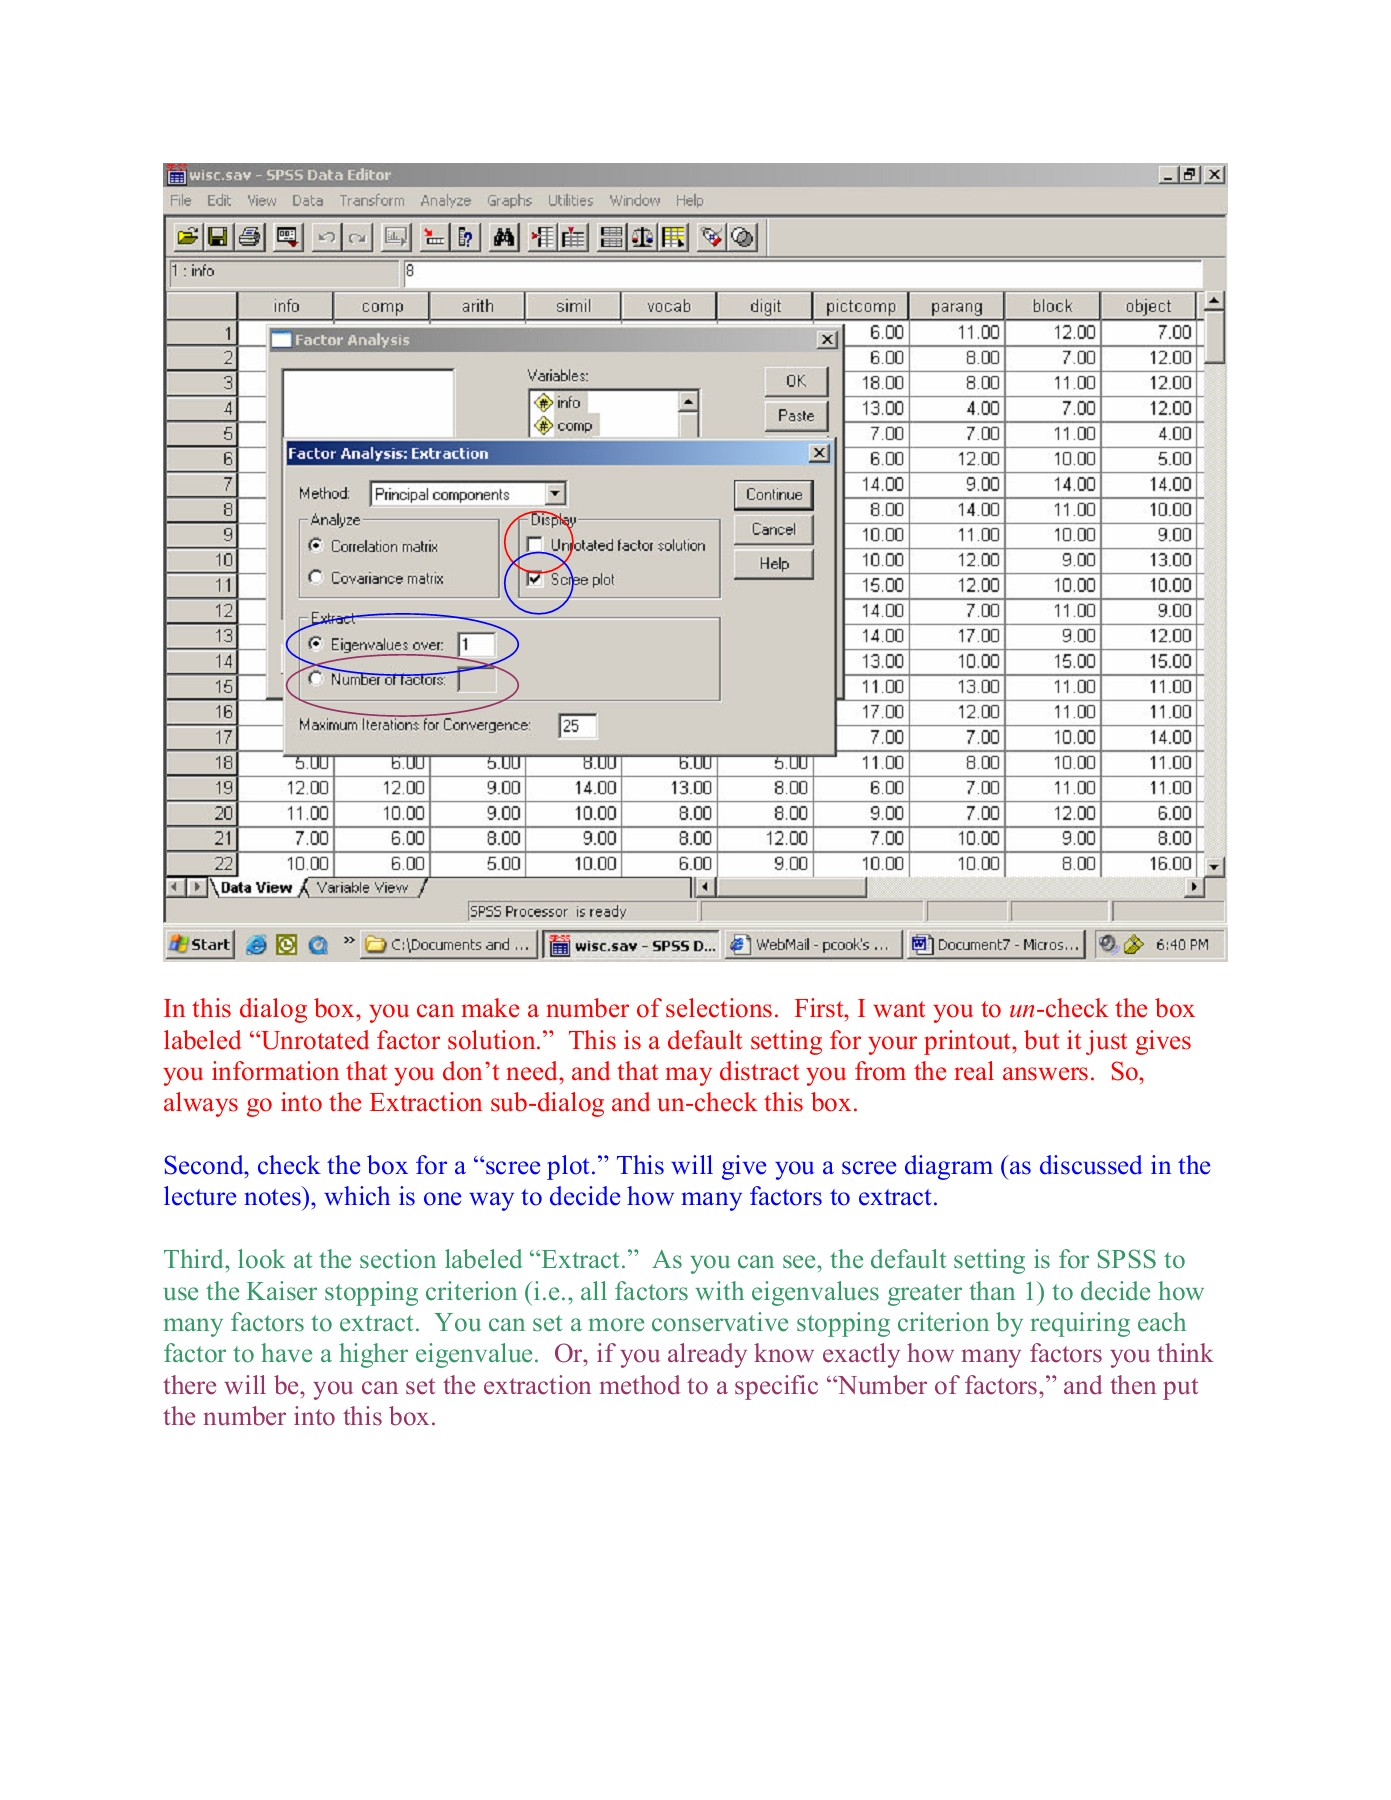 Factor Analysis in SPSS To conduct a Factor Analysis